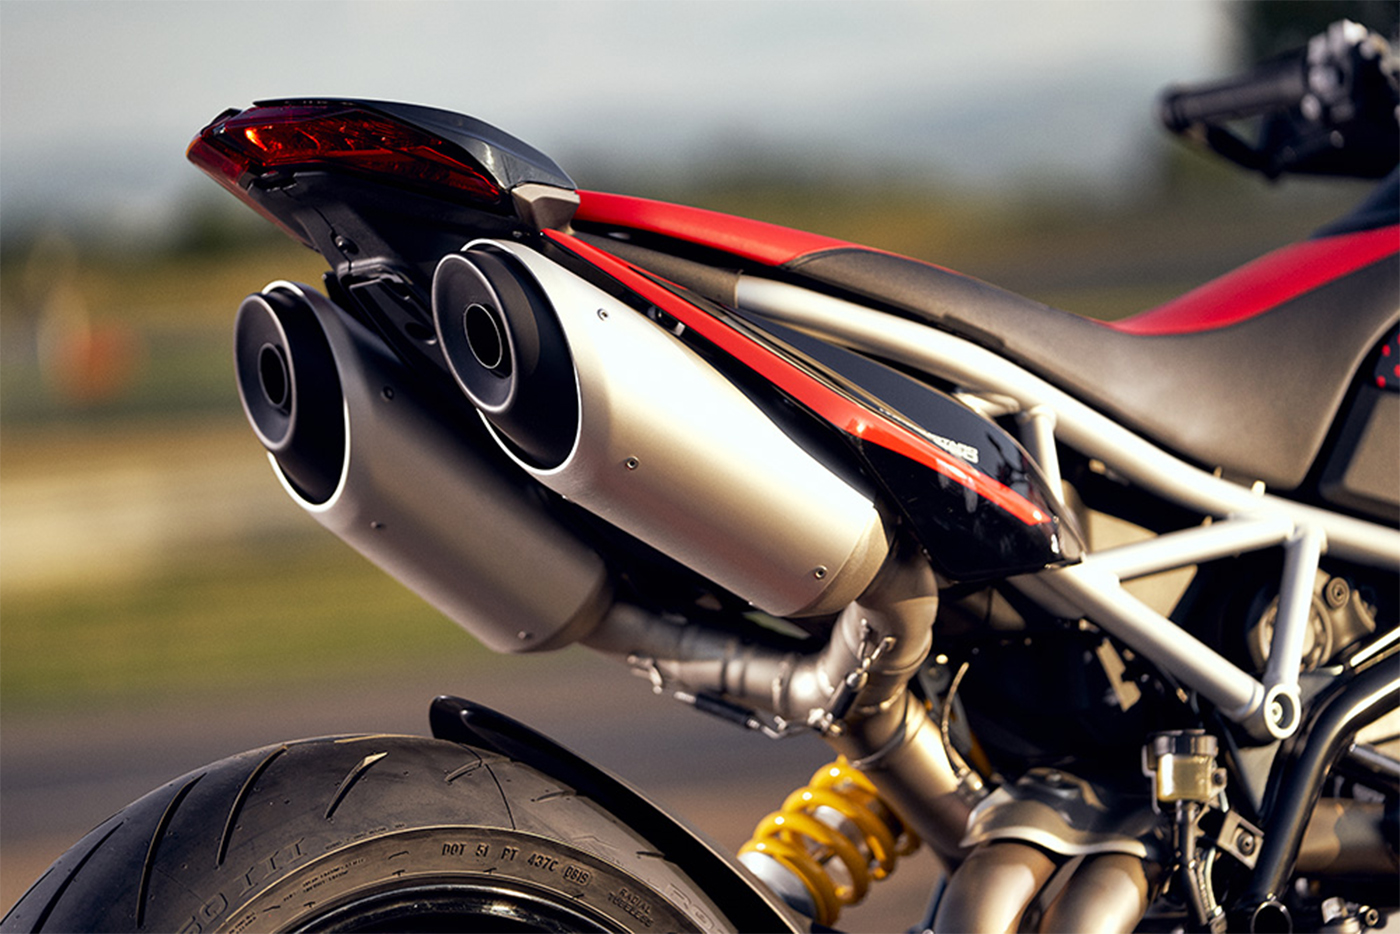 2020-ducati-hypermotard-950-rve-low-res-20.jpg